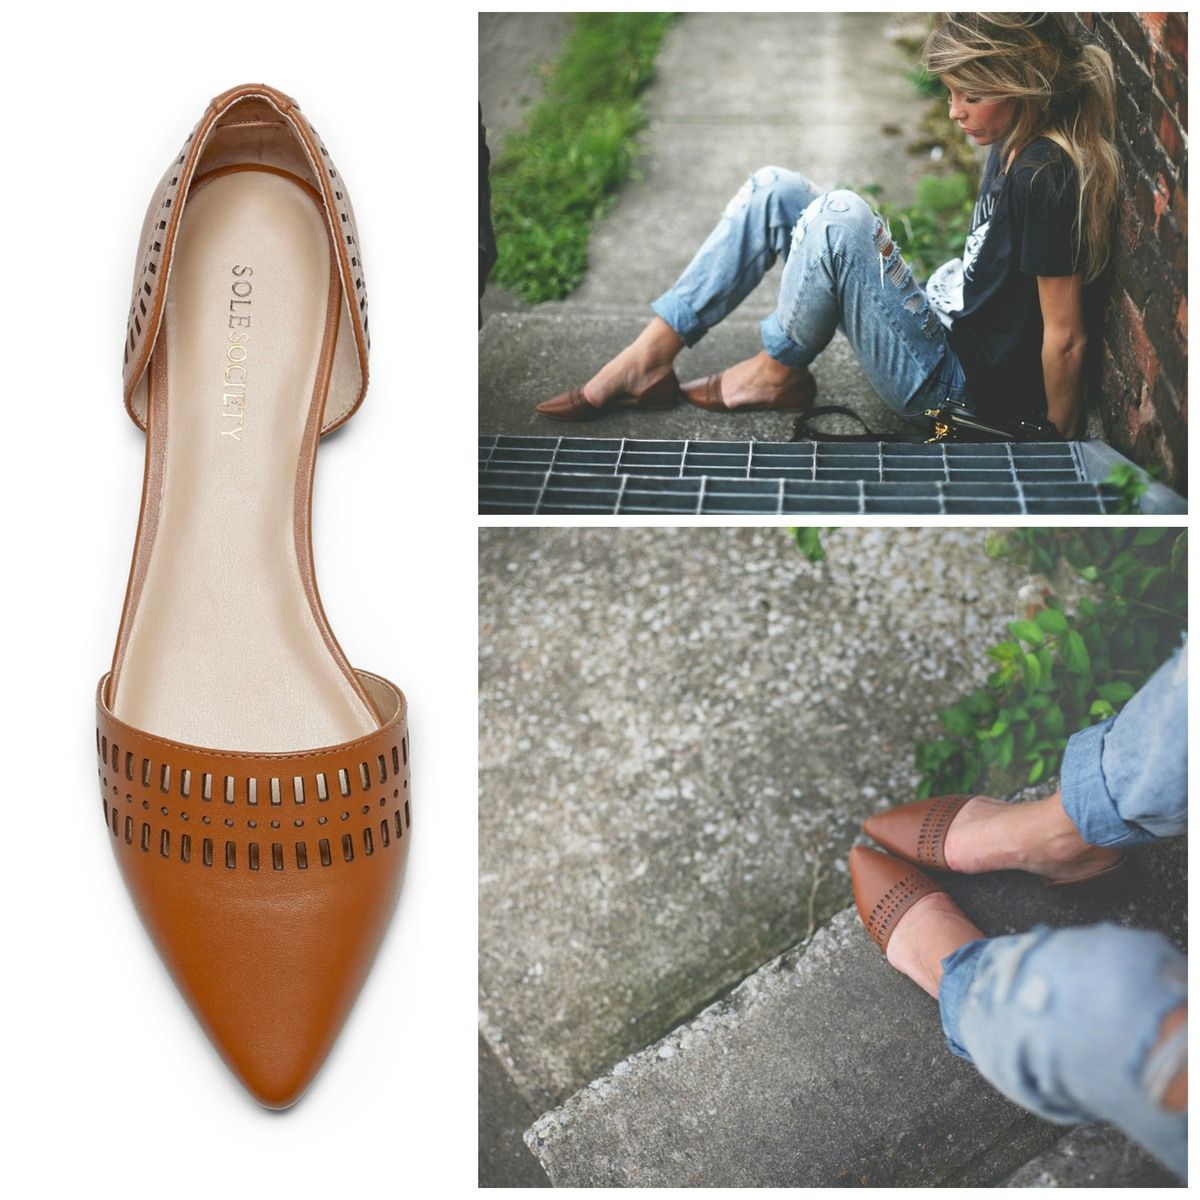 e6339734e0 Genuine leather d'Orsay flats with laser cut detail and slip-on ease.  Designed for all-day comfort.